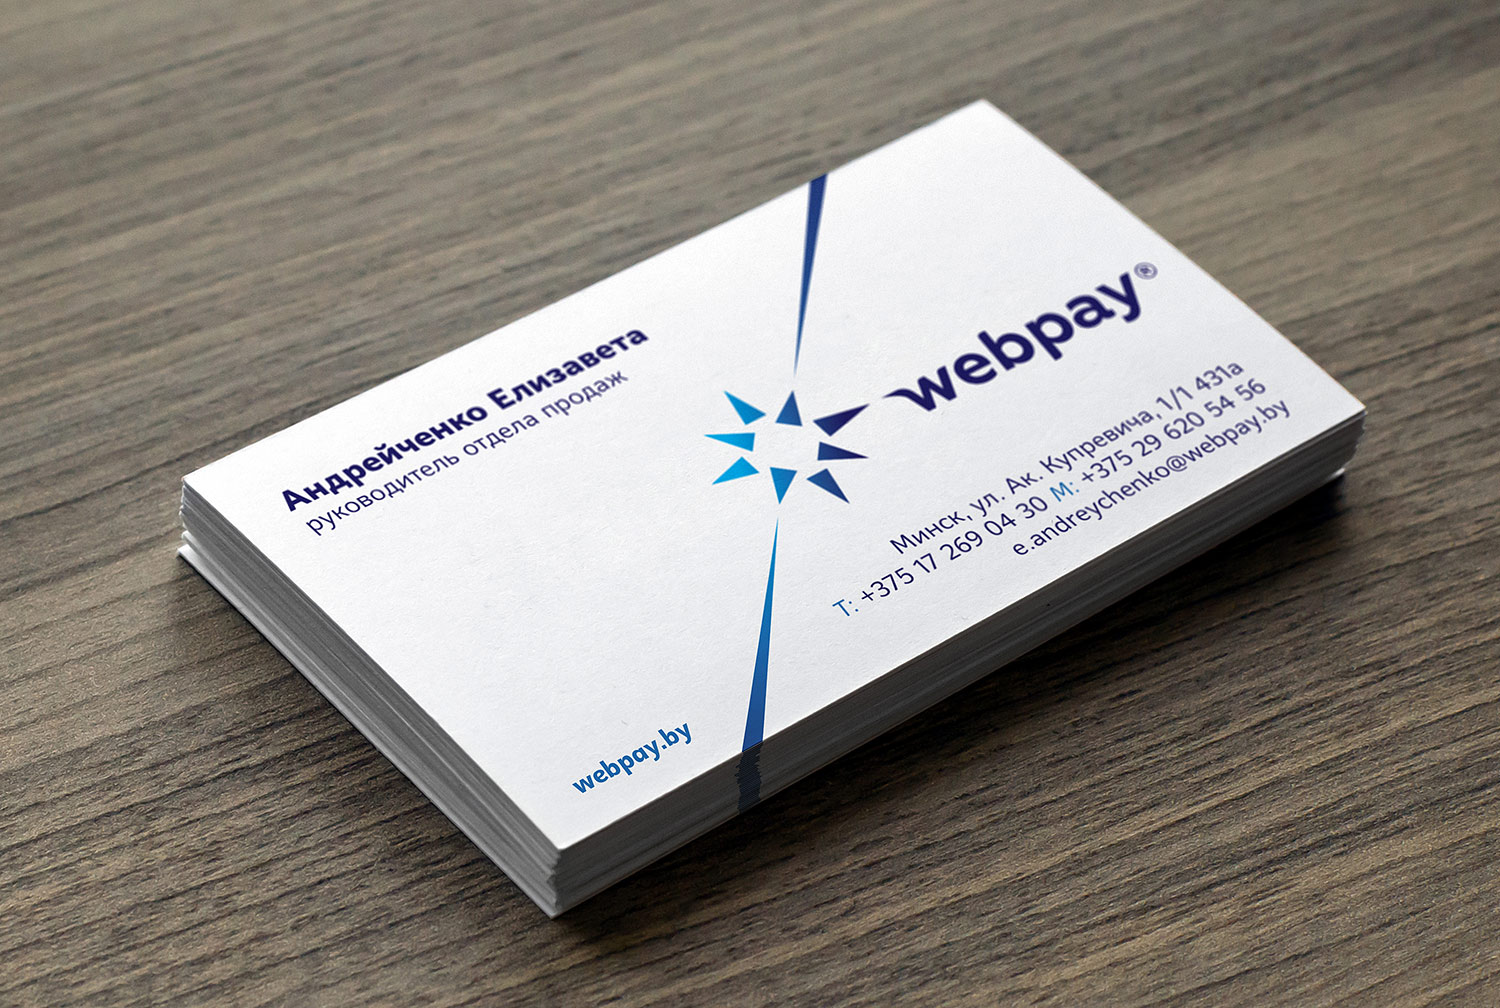 Business card of a Webpay company employee.